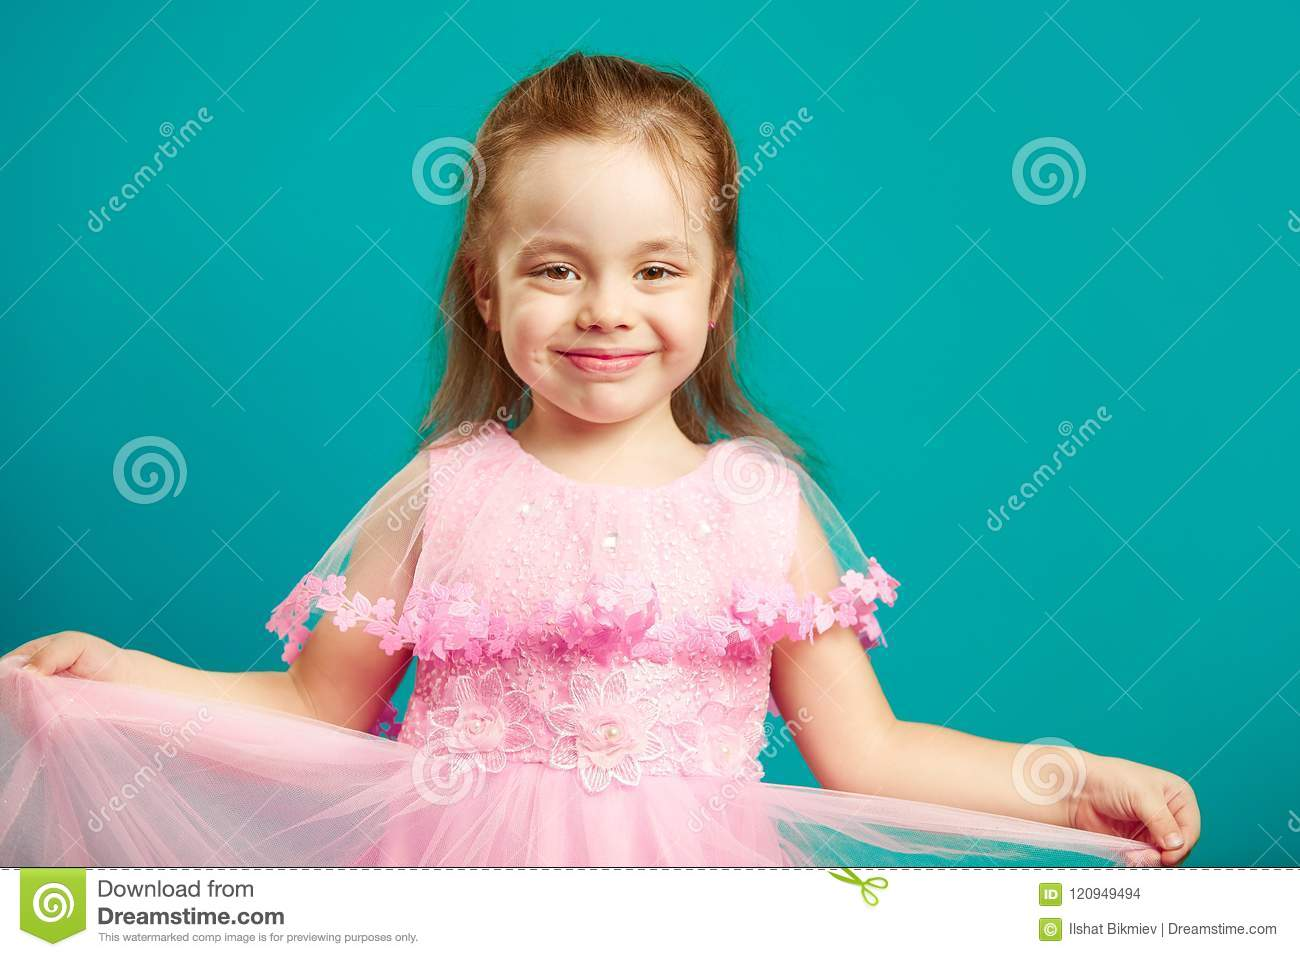 962de73b6a74 Baby Girl In Beautiful Pink Dress On Blue Isolated Stock Photo ...